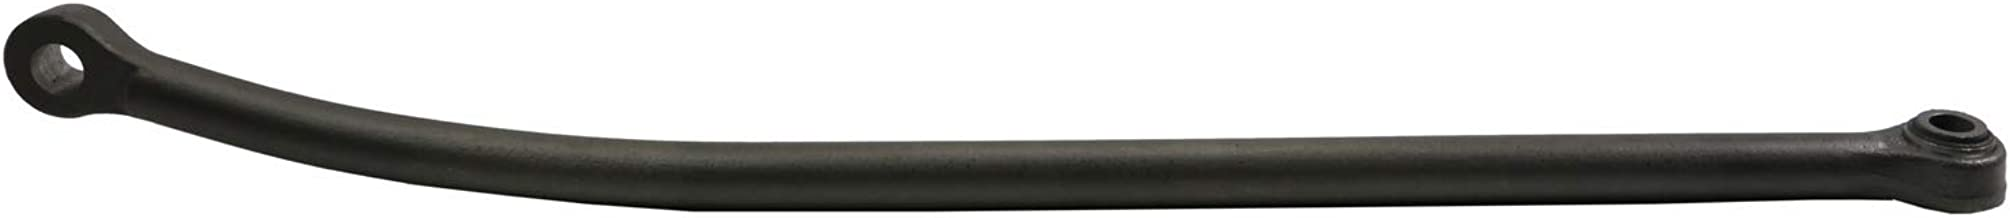 MOOG Chassis Products MOOG DS300045 Track Bar